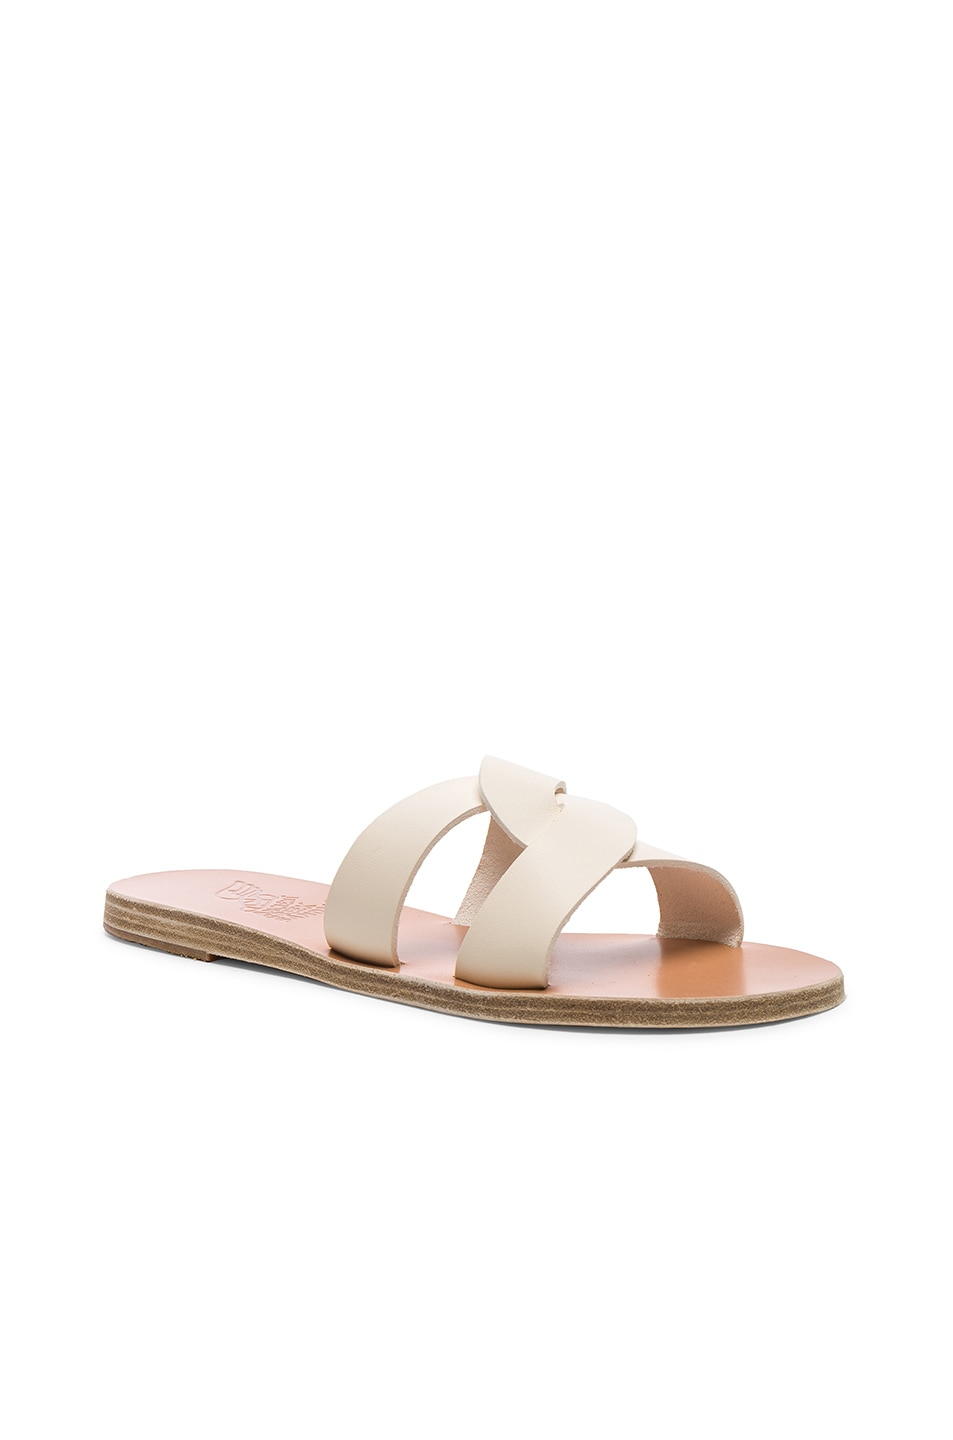 Image 2 of Ancient Greek Sandals Leather Desmos Sandals in Off White